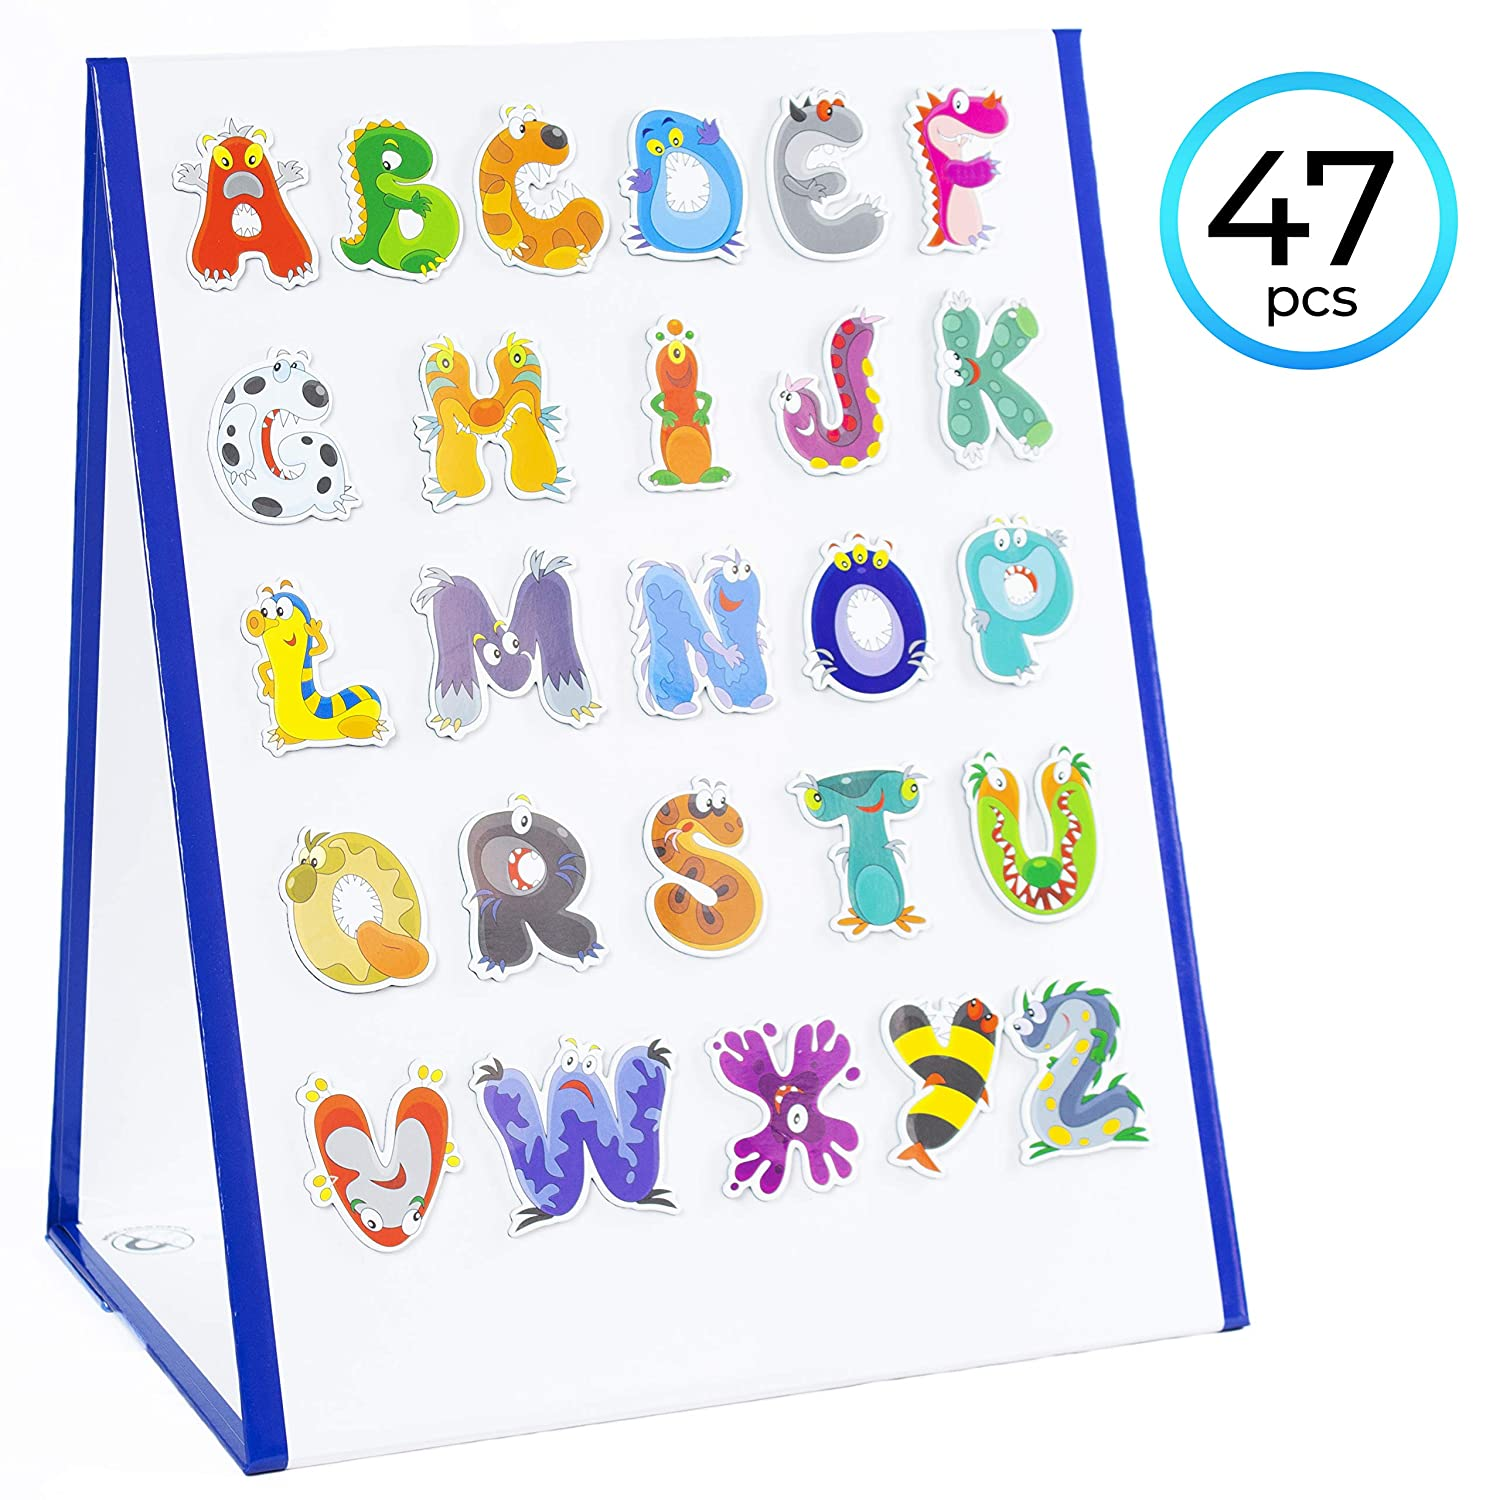 FauxPeony Kids Whiteboard Double-Sided Magnetic White Board   Dry Wipe Easel Children Art A3 Chalkboard   With Markers, Letters and Numbers   Drawing, Developing Handwriting, Improving Motor Skills